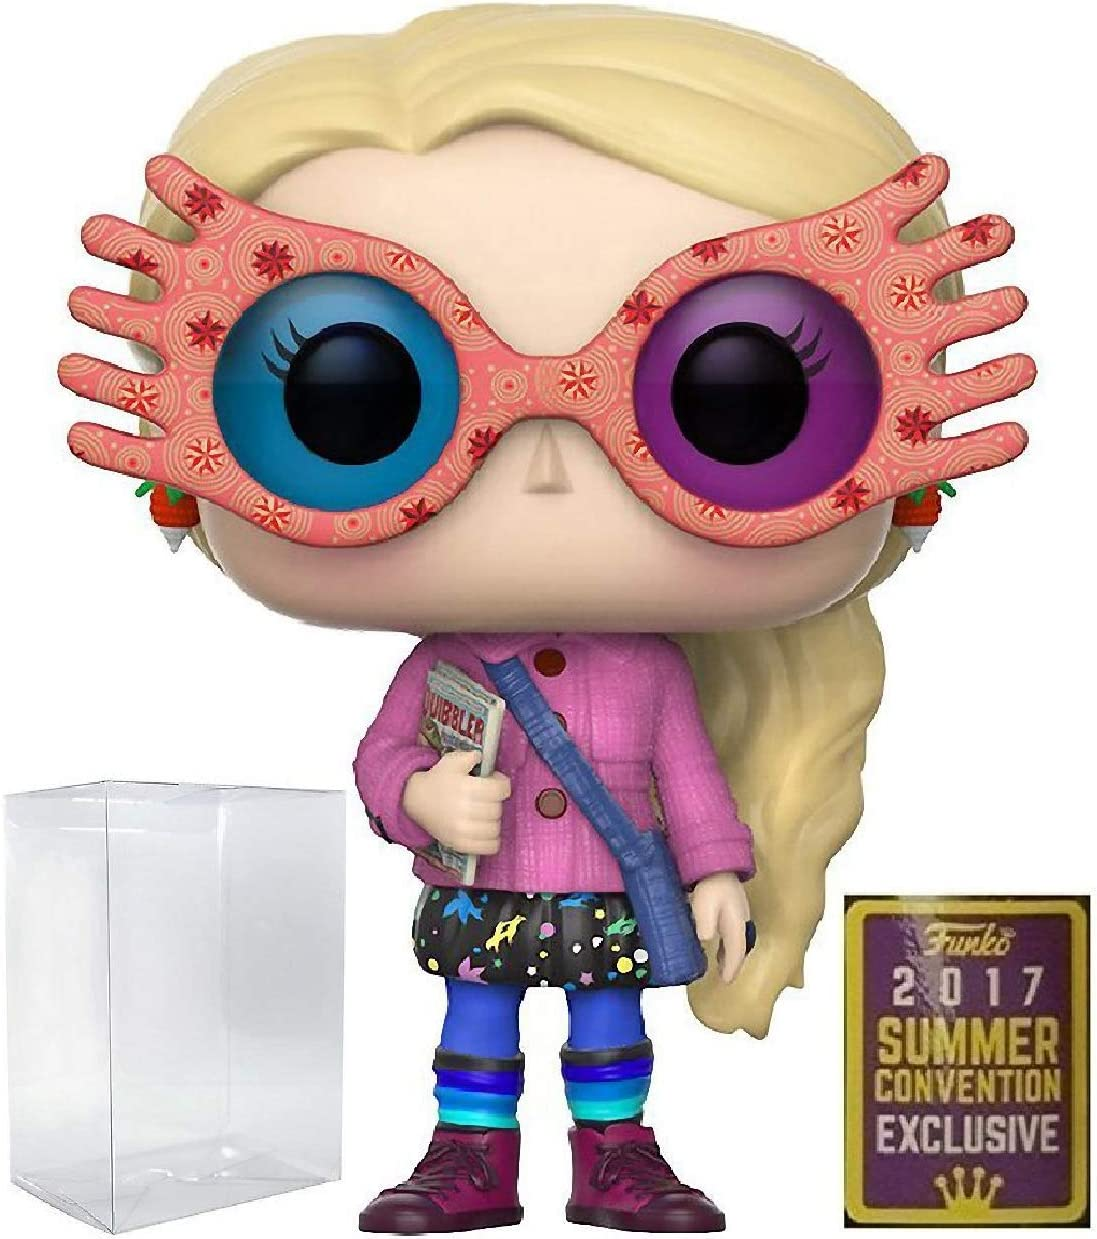 Amazon Com Harry Potter Luna Lovegood With Glasses Funko Pop Sdcc 2017 Summer Convention Exclusive Vinyl Figure Includes Compatible Pop Box Protector Case Toys Games Hand engraved harry potter inspired set of 4 house crest shot glasses, available individually and name can be. harry potter luna lovegood with glasses funko pop sdcc 2017 summer convention exclusive vinyl figure includes compatible pop box protector case